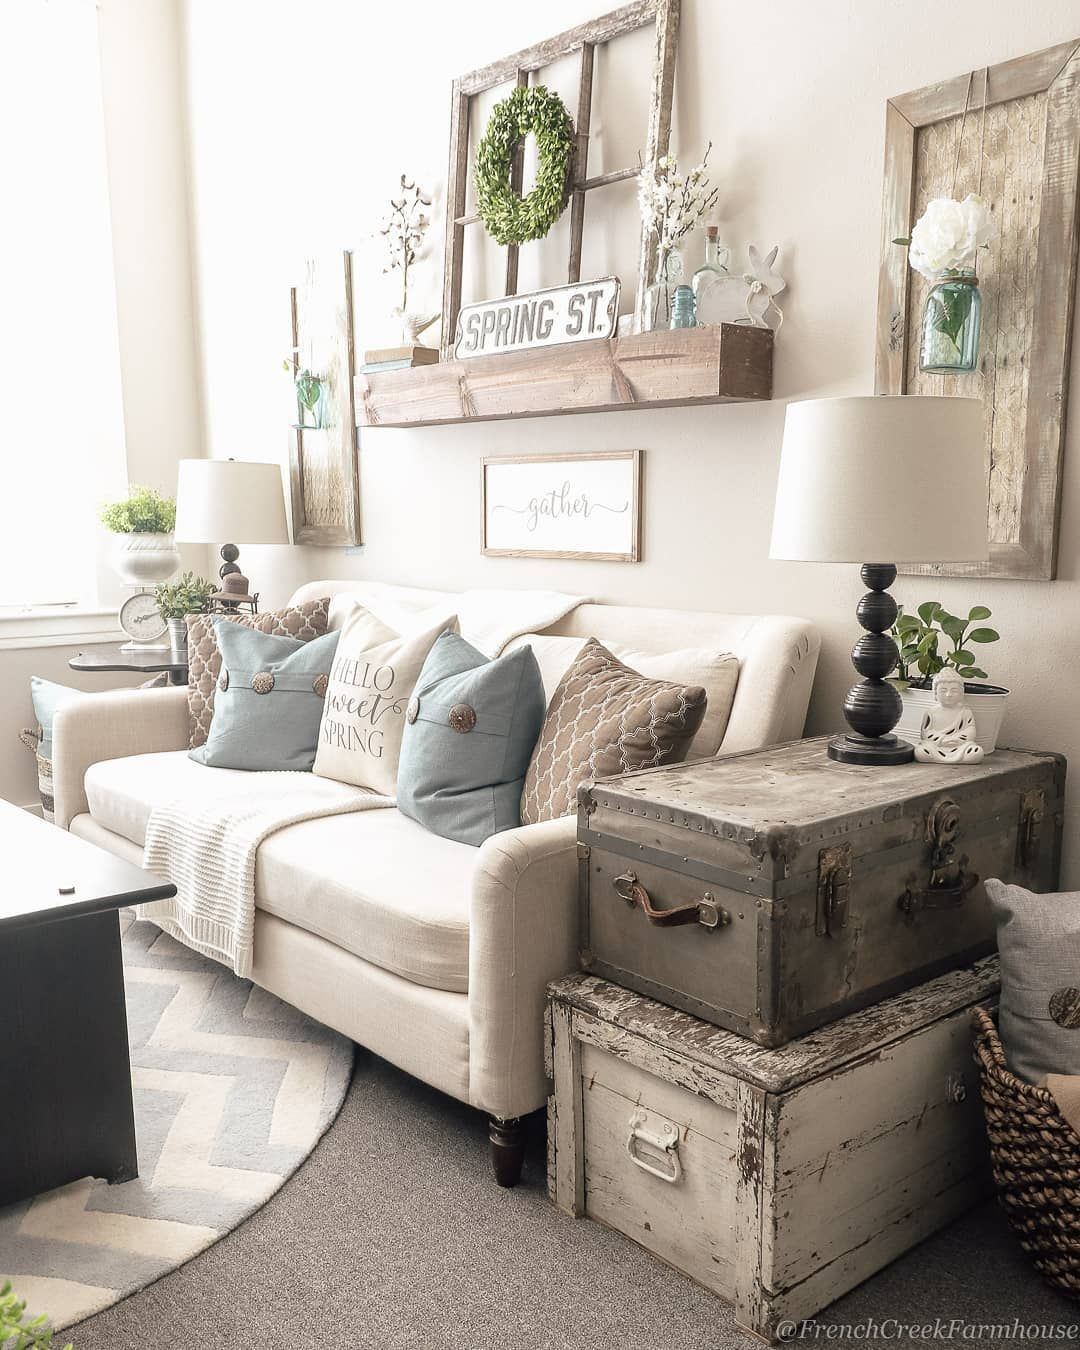 Image may contain: table and indoor | Farmhouse decor ...